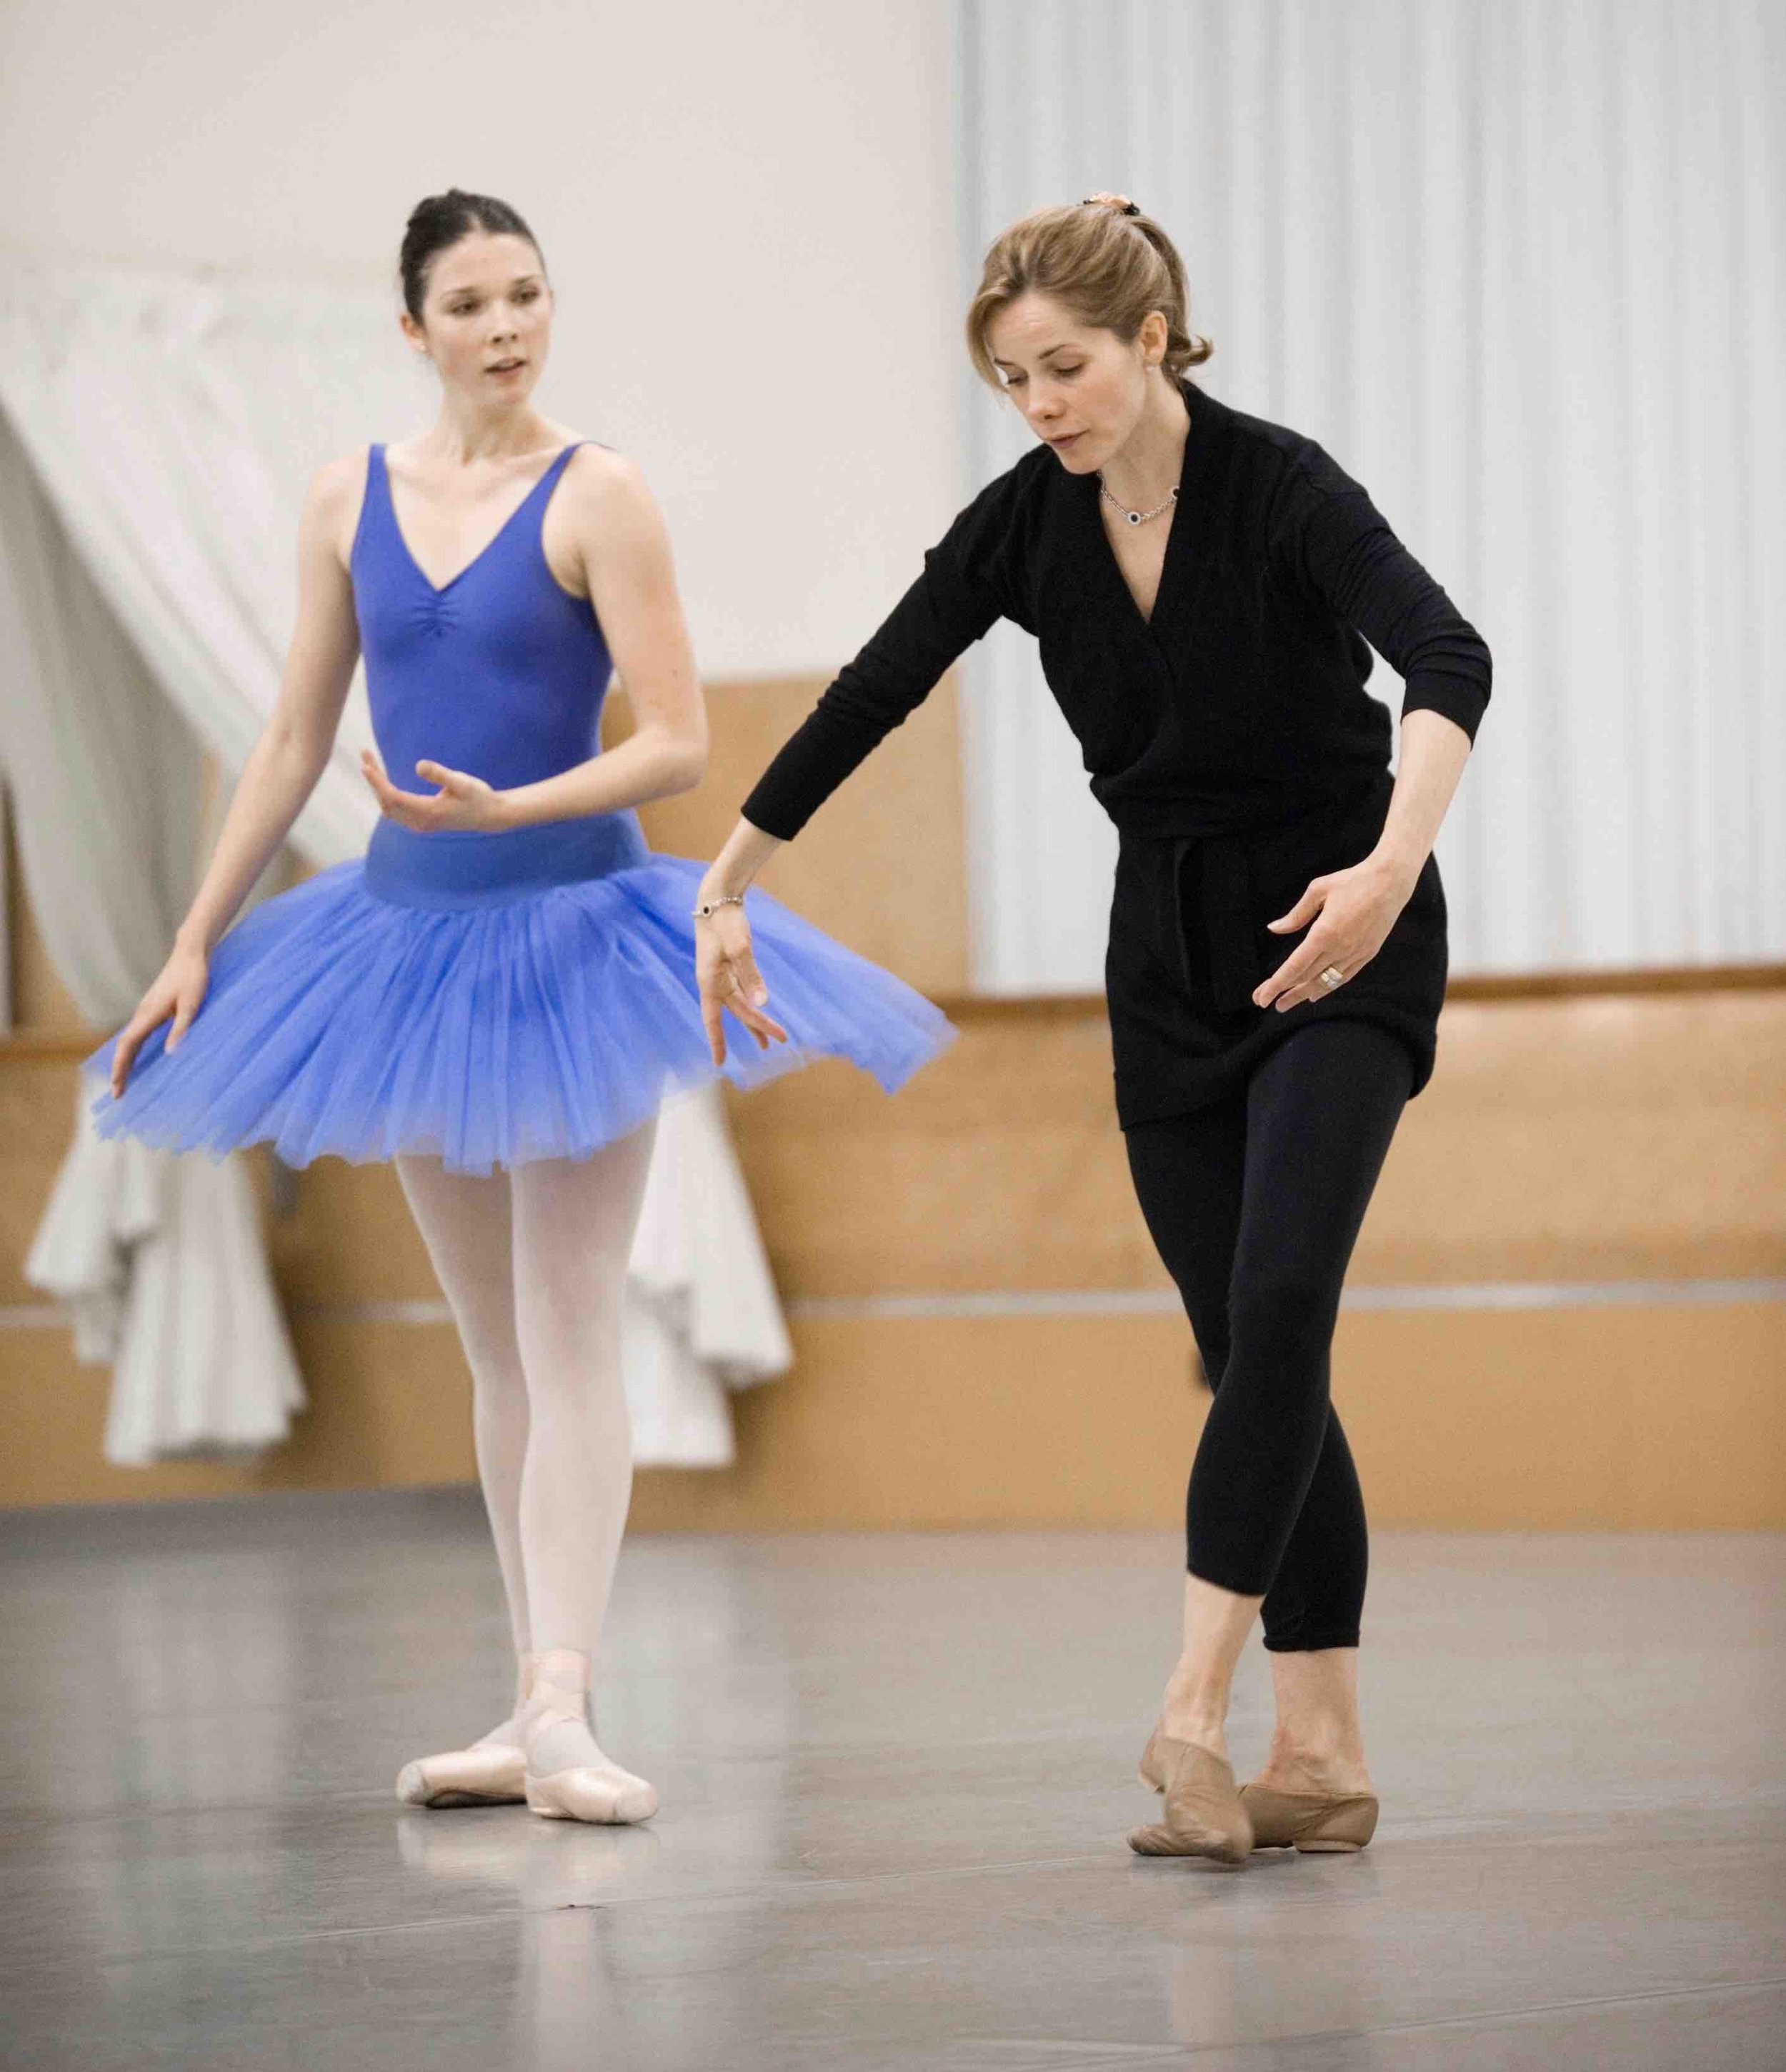 Darcey Bussell coaching NZSD student Laura Saxon-Jones. By Stephen A'Court.